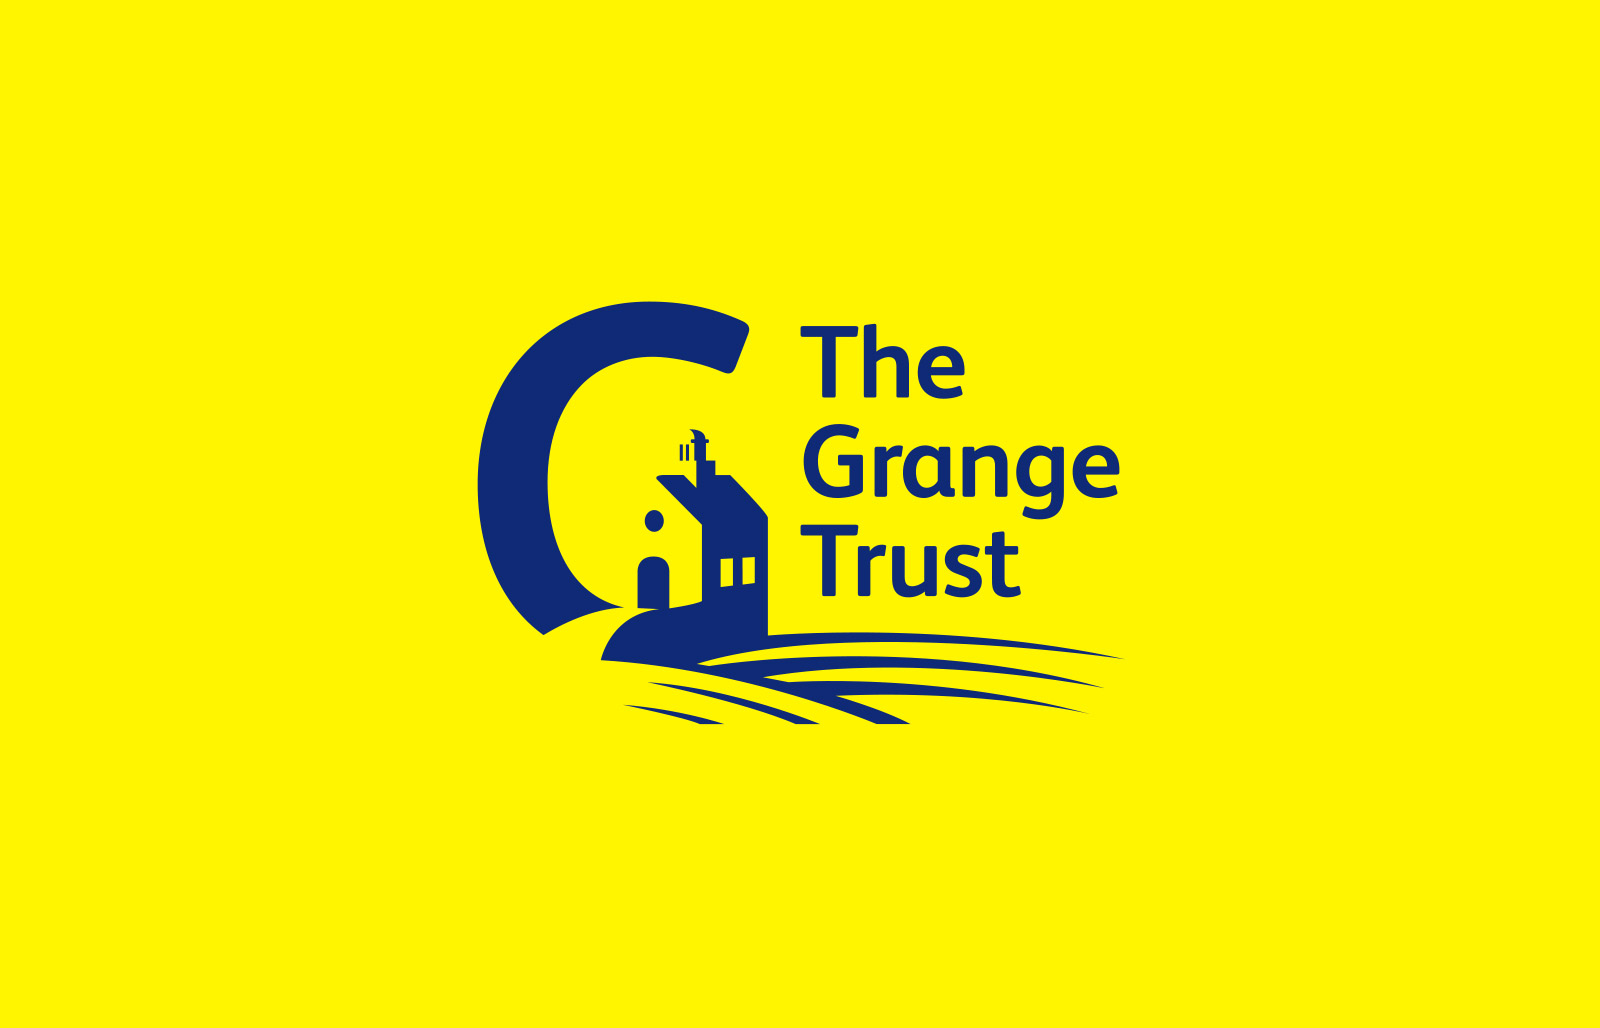 the grange trust bramley primary school logo design designer sheffield